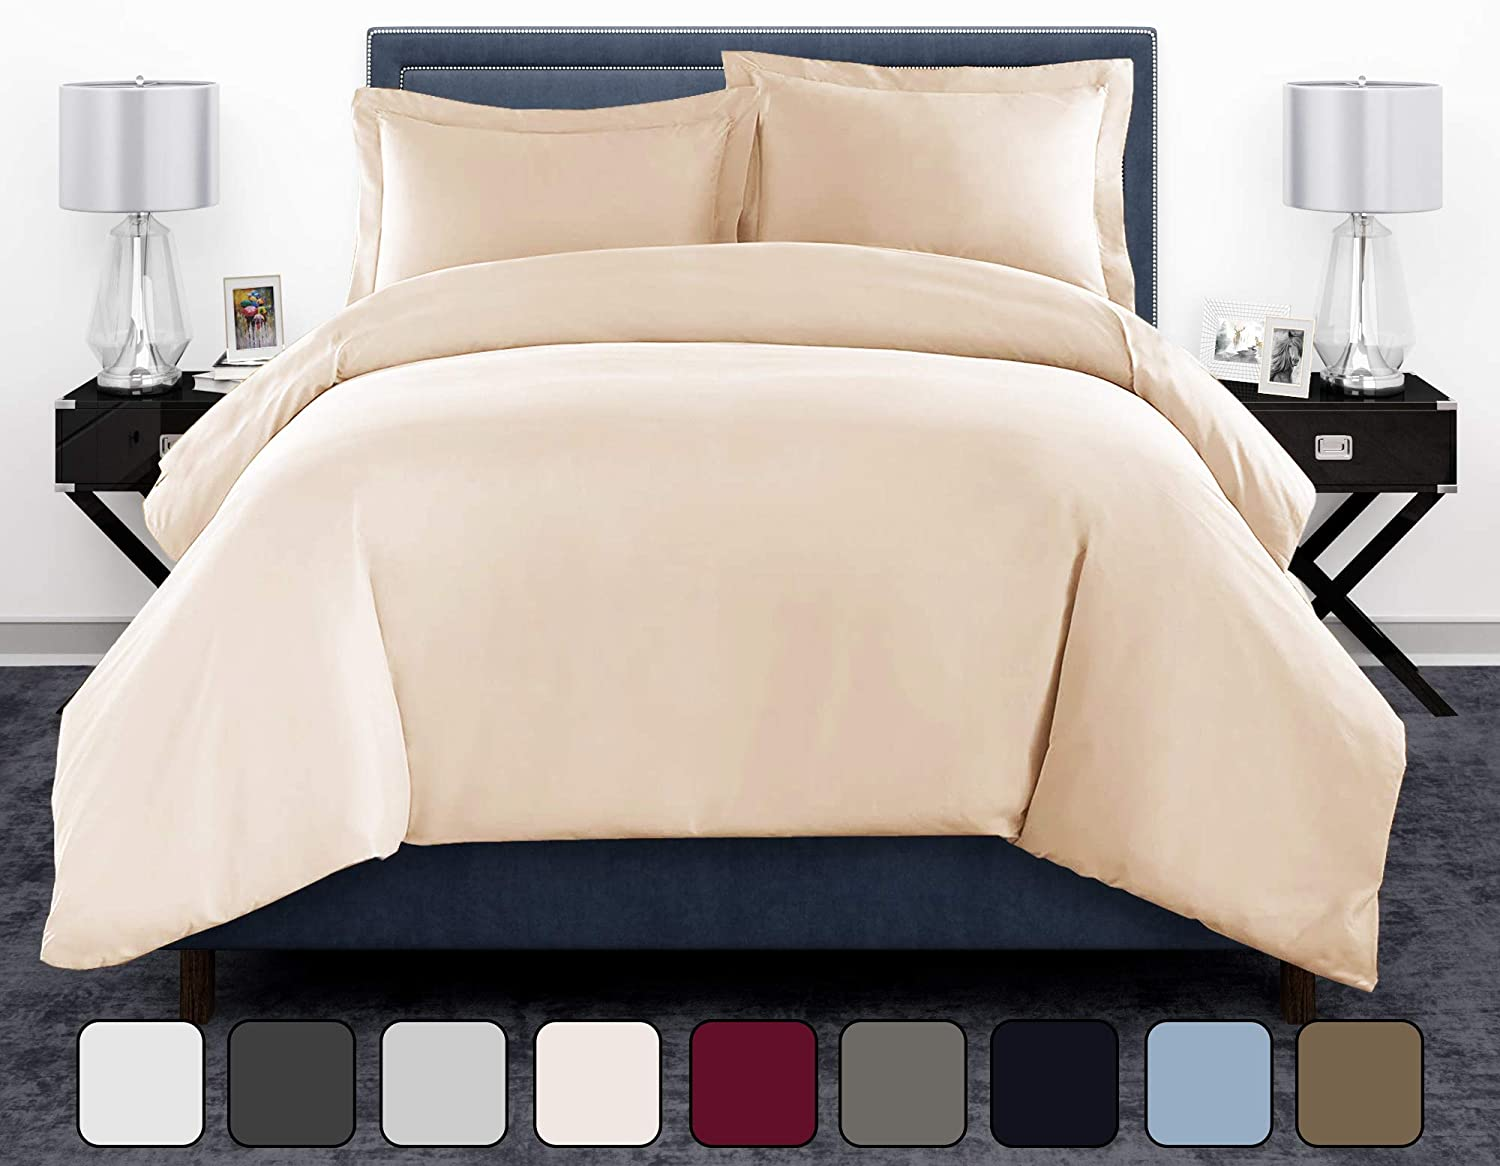 Kair 600 Thread Count Ultra Soft 100% Pure Egyptian Cotton Ivory King/California King Size Duvet Cover Set - 3 Piece Luxury Sateen Weave Quilt Cover with Hidden Zipper Closure & Corner Ties